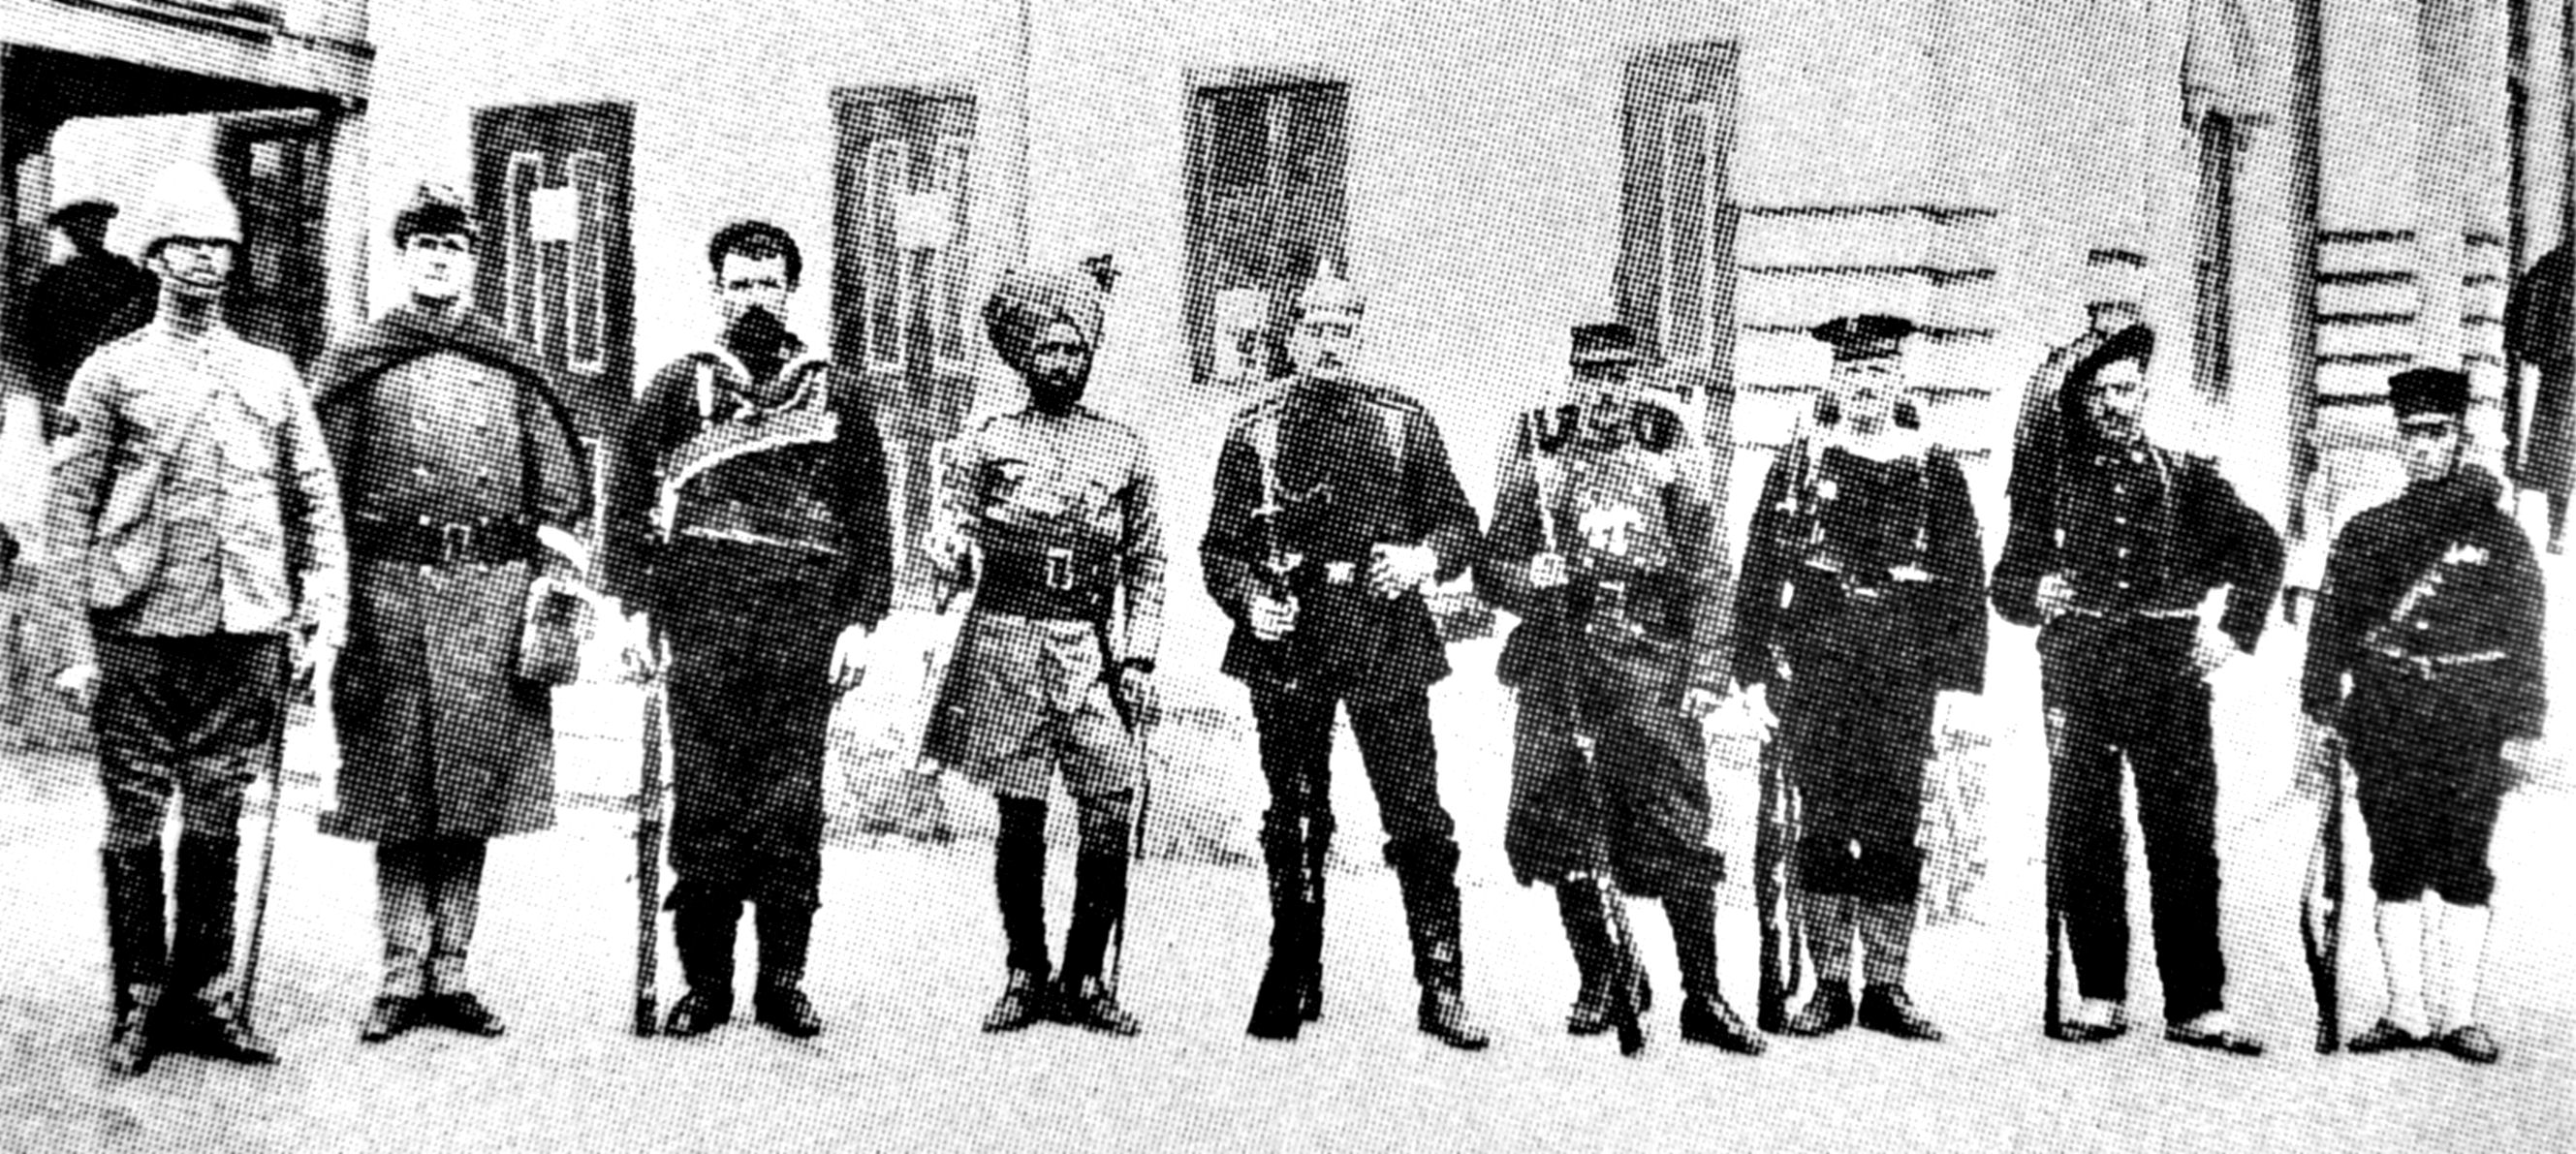 File:Troops of the Eight nations alliance 1900.jpg - Wikipedia ...